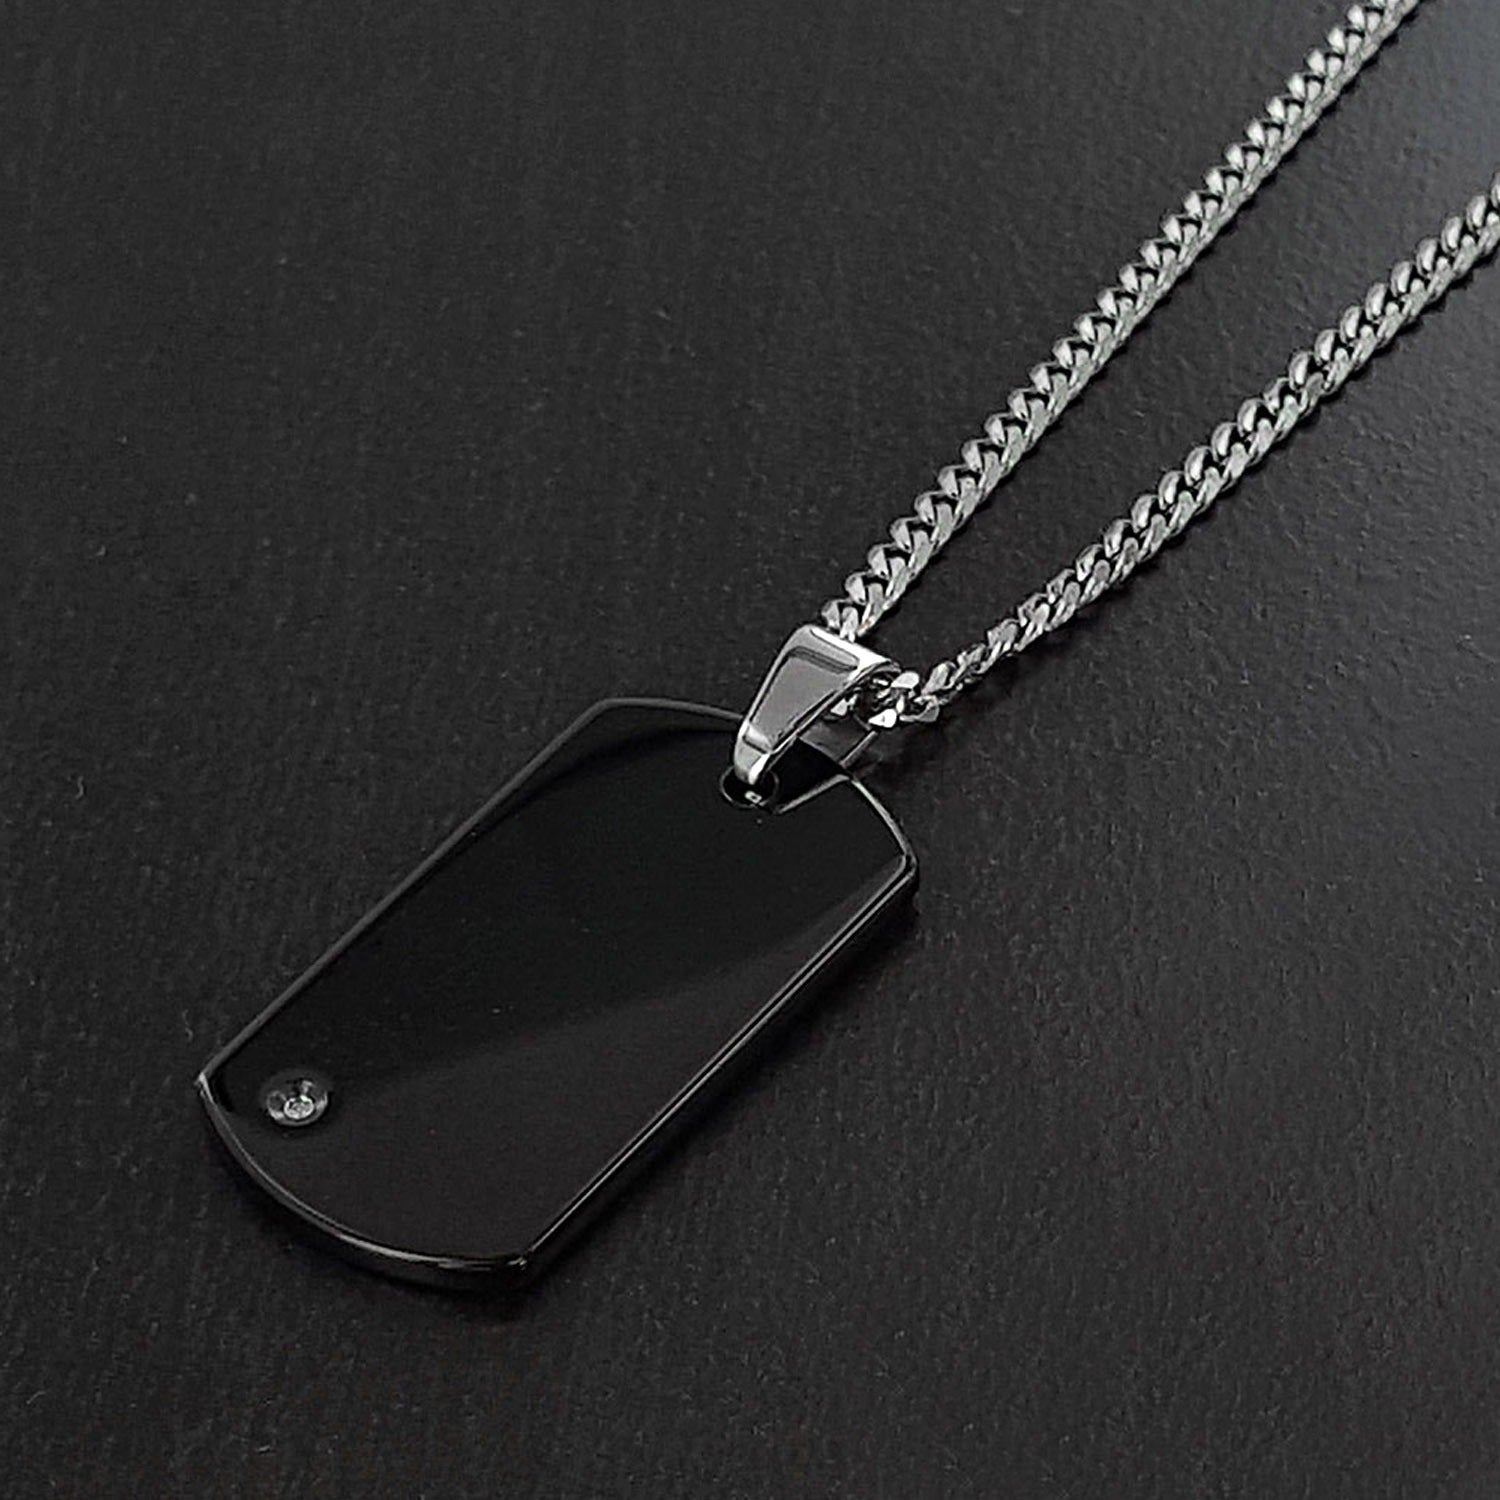 jewelry edge shipping tungsten carbon free on id watches over overstock inches pendant orders product fiber mirror white tag dog